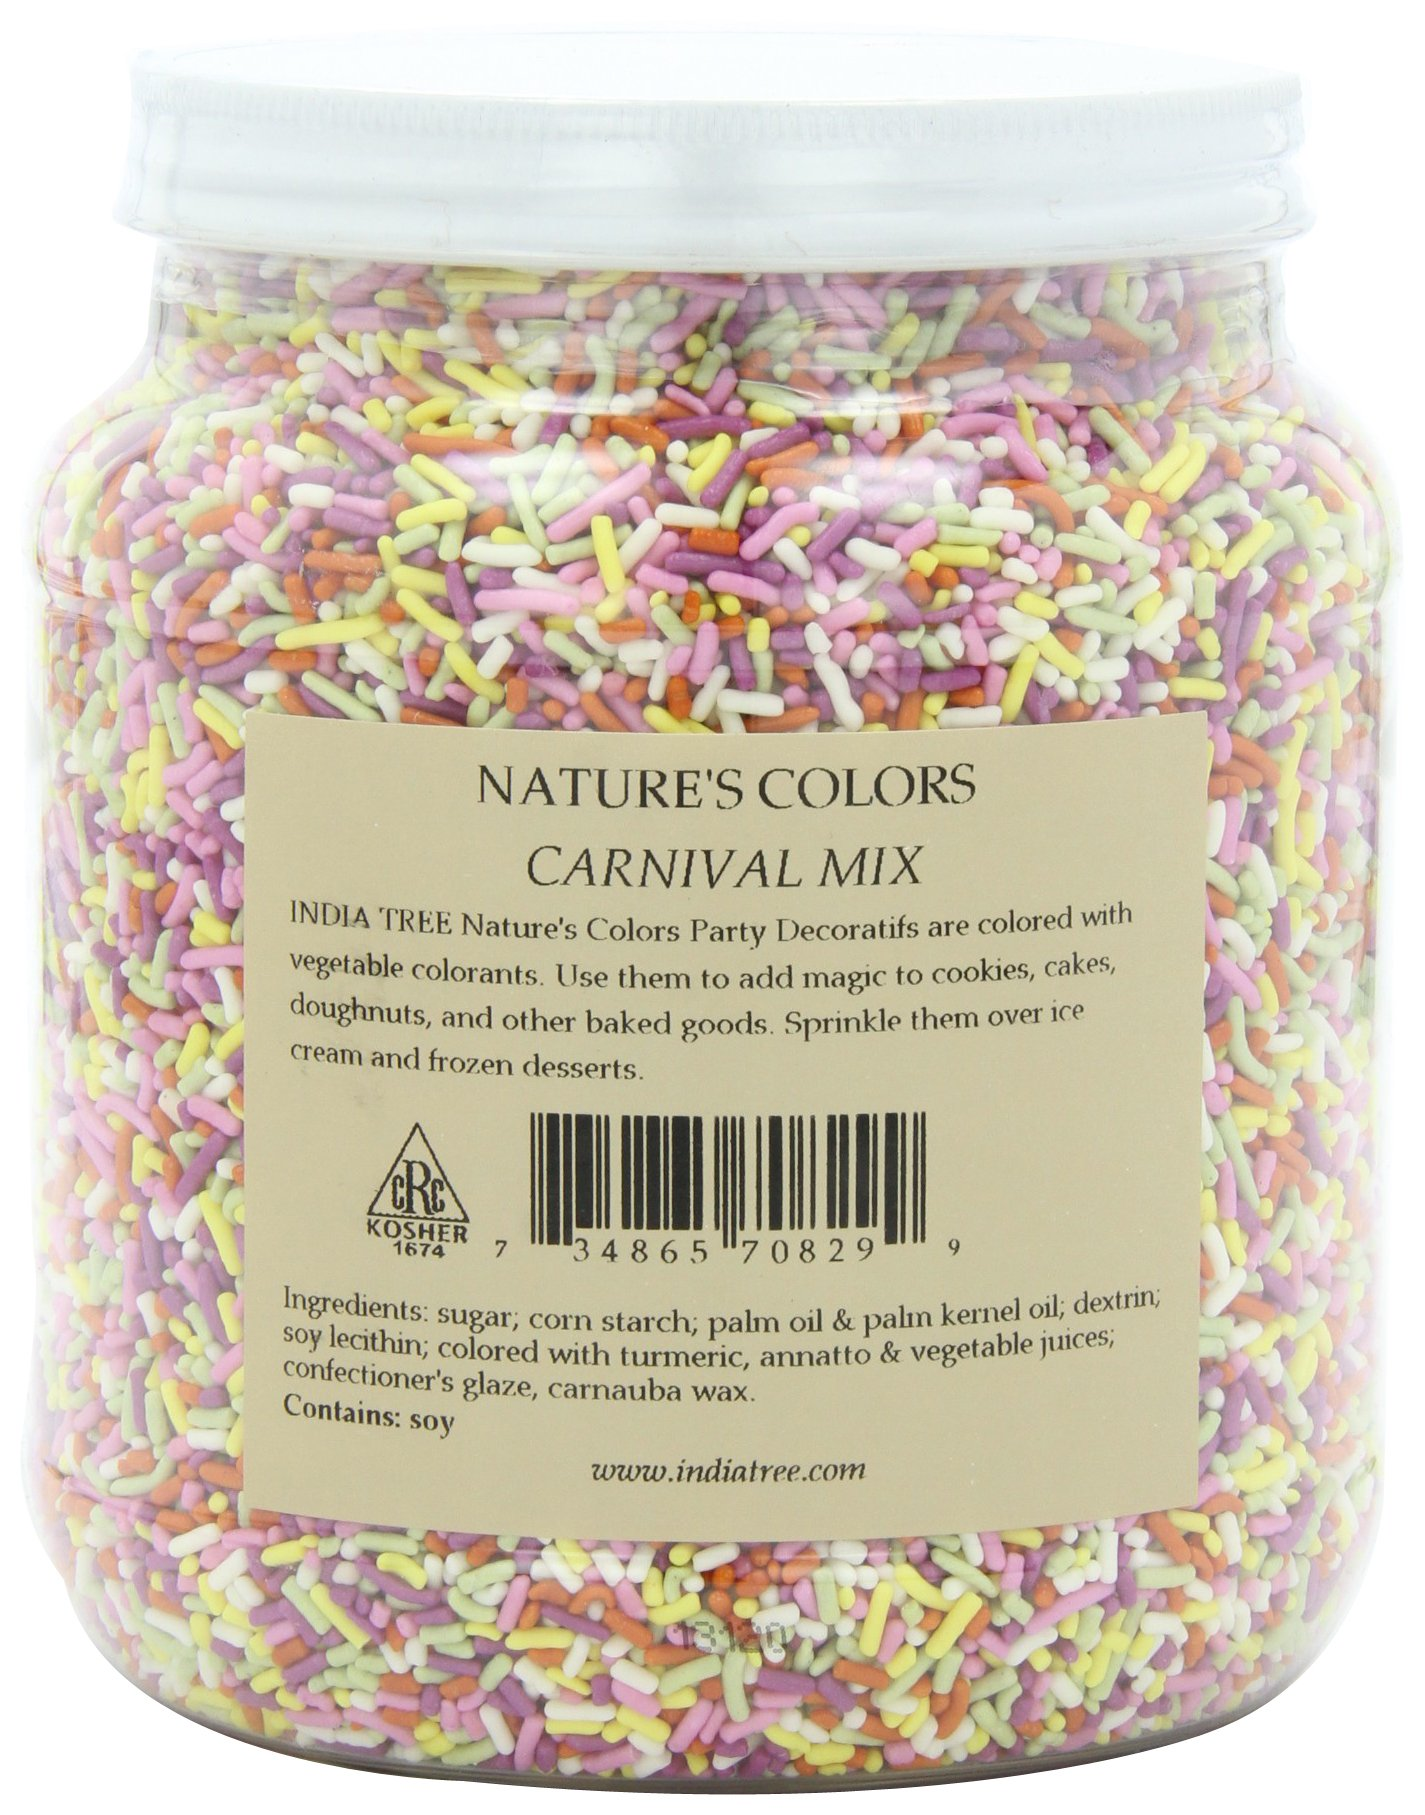 India Tree Nature's Colors Sprinkles, Carnival Mix, 2.9-Pound by India Tree (Image #2)